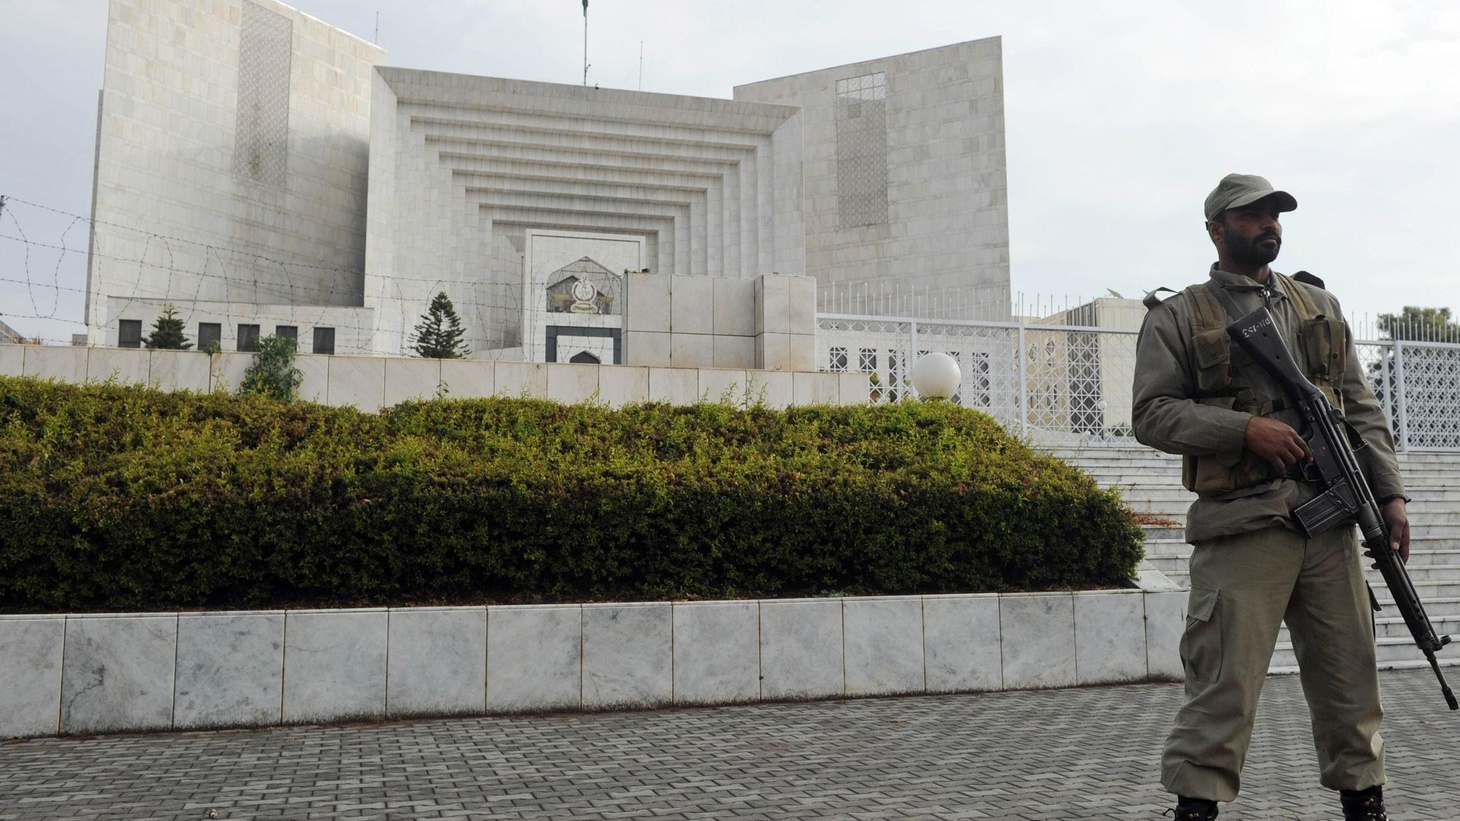 Pakistan's parliamentary government is under assault from the Supreme Court, backed by the military. In economic shambles, it's in a bloody conflict with Islamic extremists.